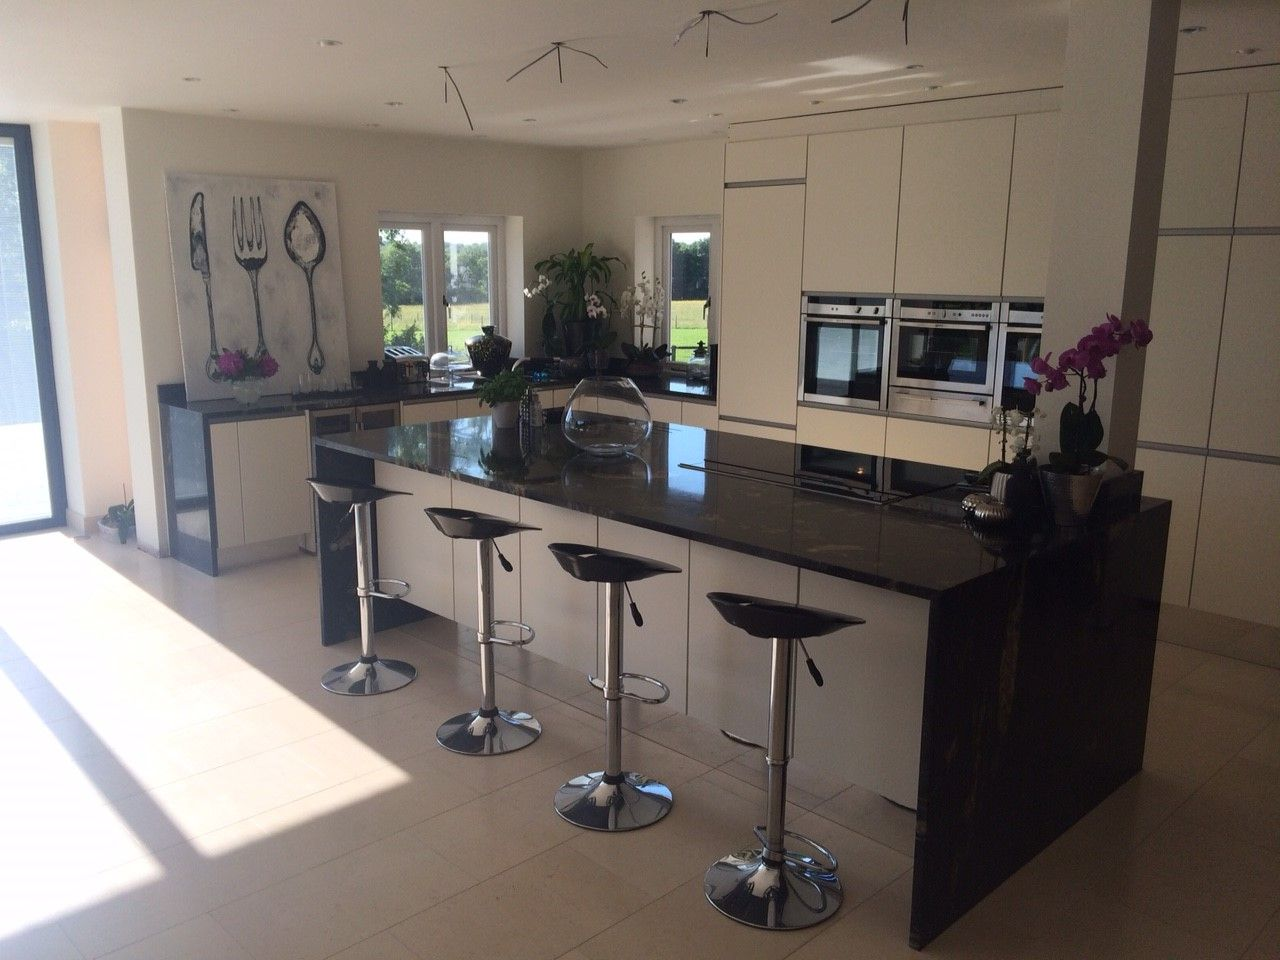 Cosmis Black Granite In A Polished Finish Kitchen Island With Downstands  And Worktops